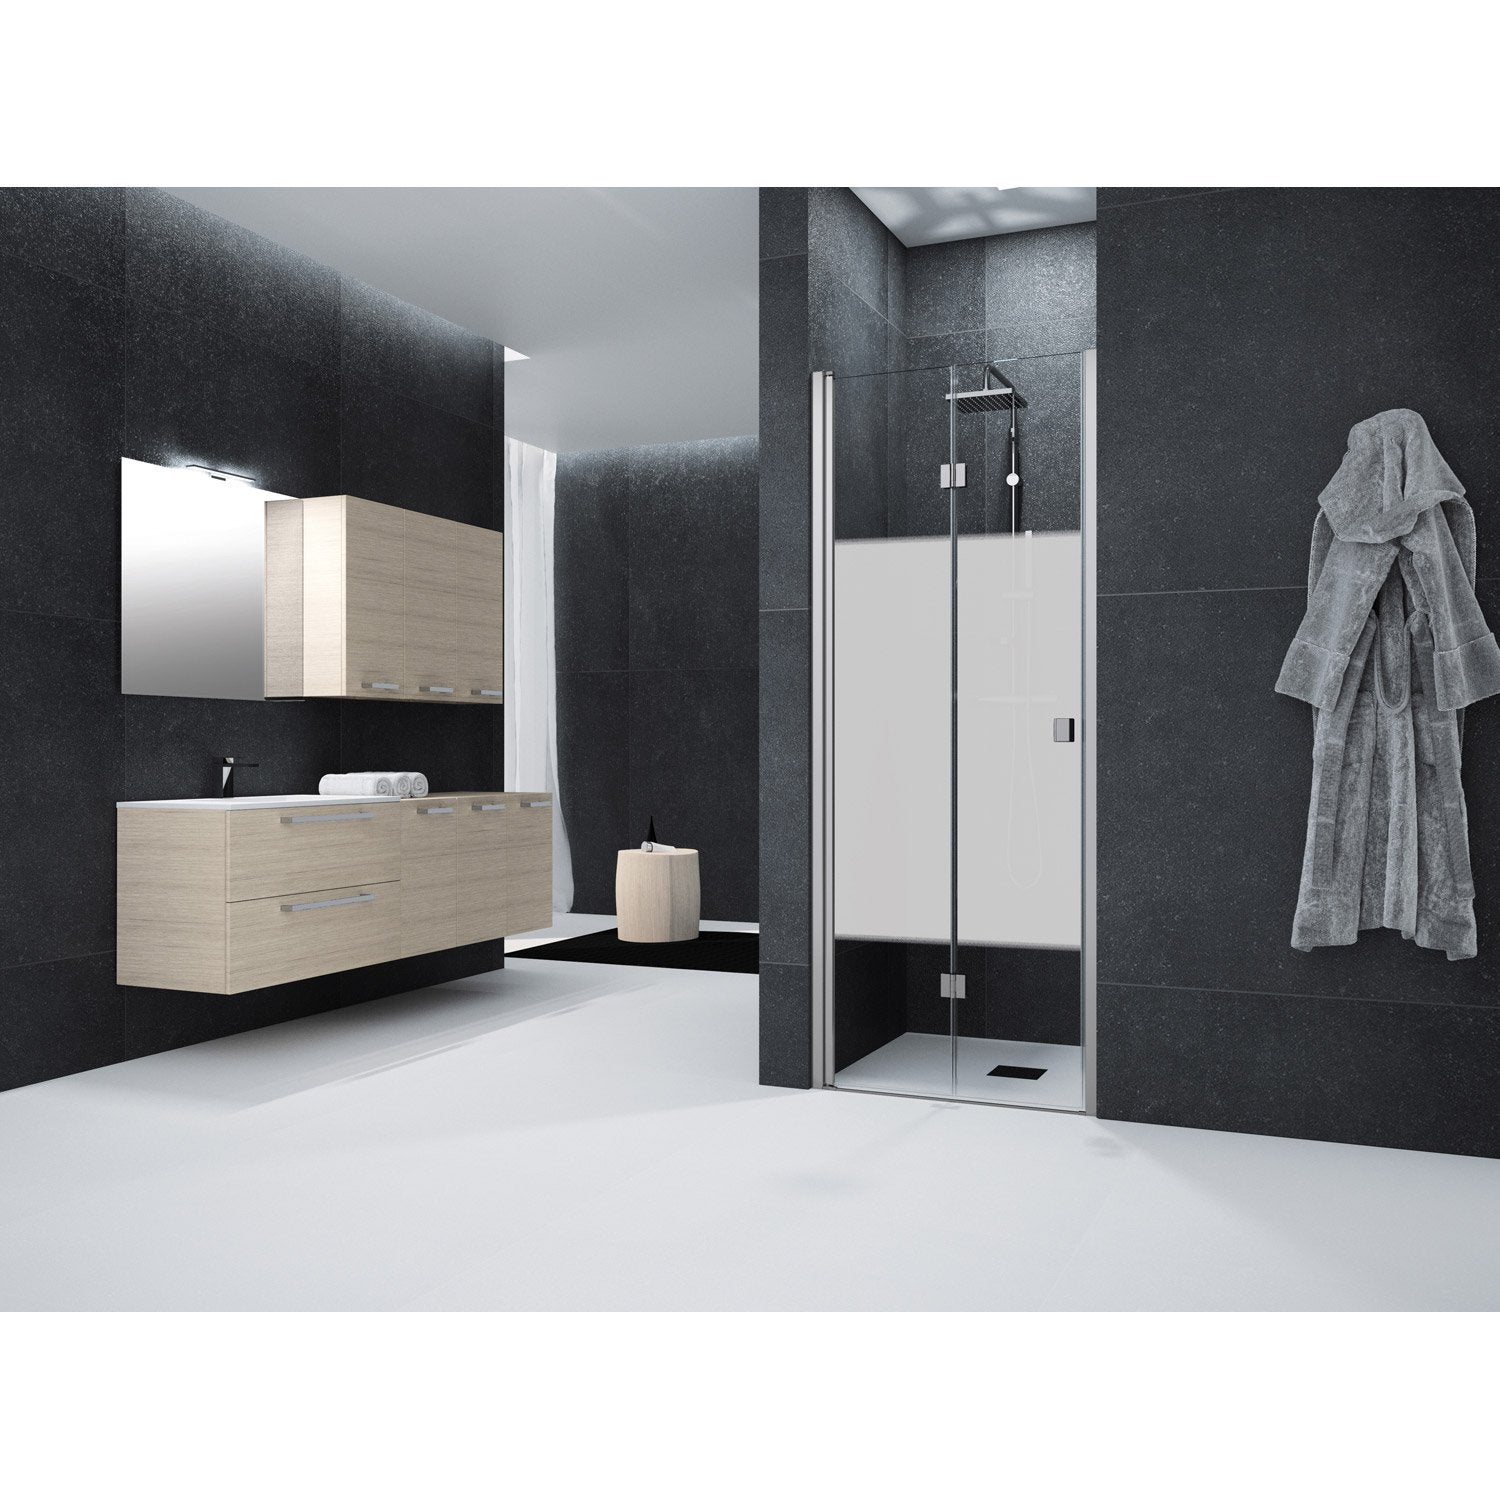 Porte pliante design fashion designs for Porte de douche leroy merlin